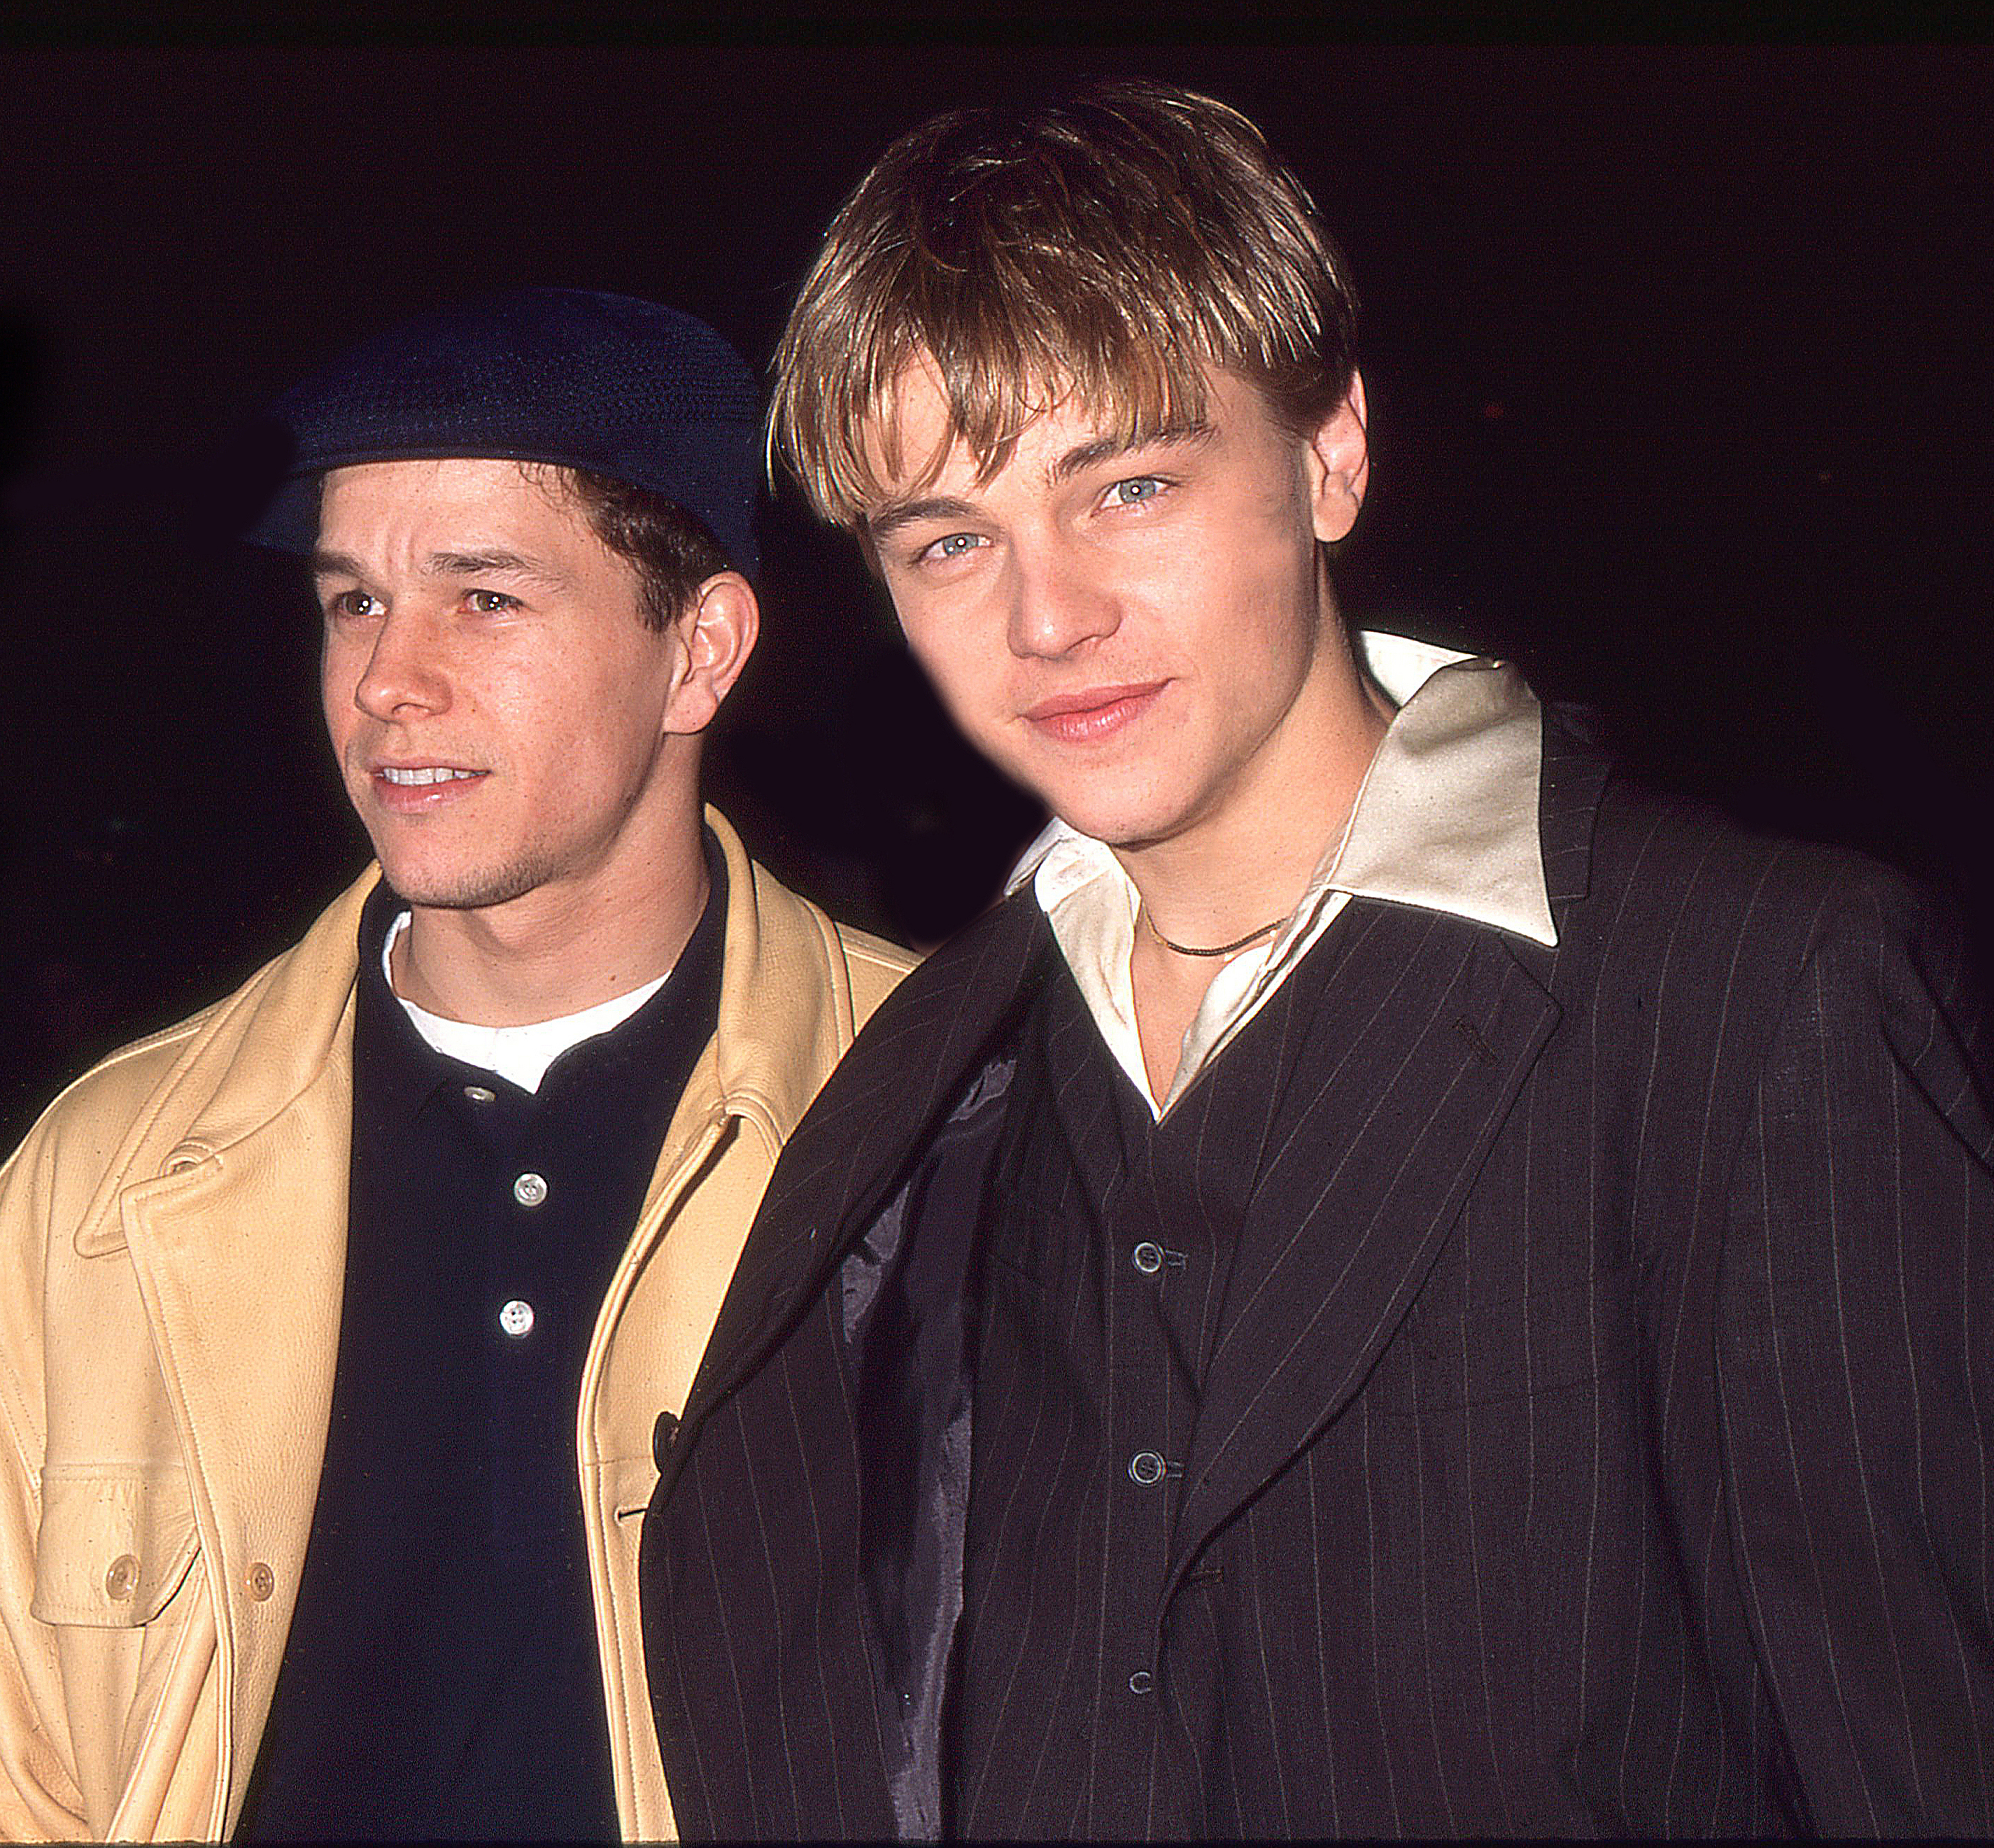 From left: Mark Wahlberg and Leonard DiCaprio attend the film premiere of <i>The Basketball Diaries</i> in New York City in 1995.